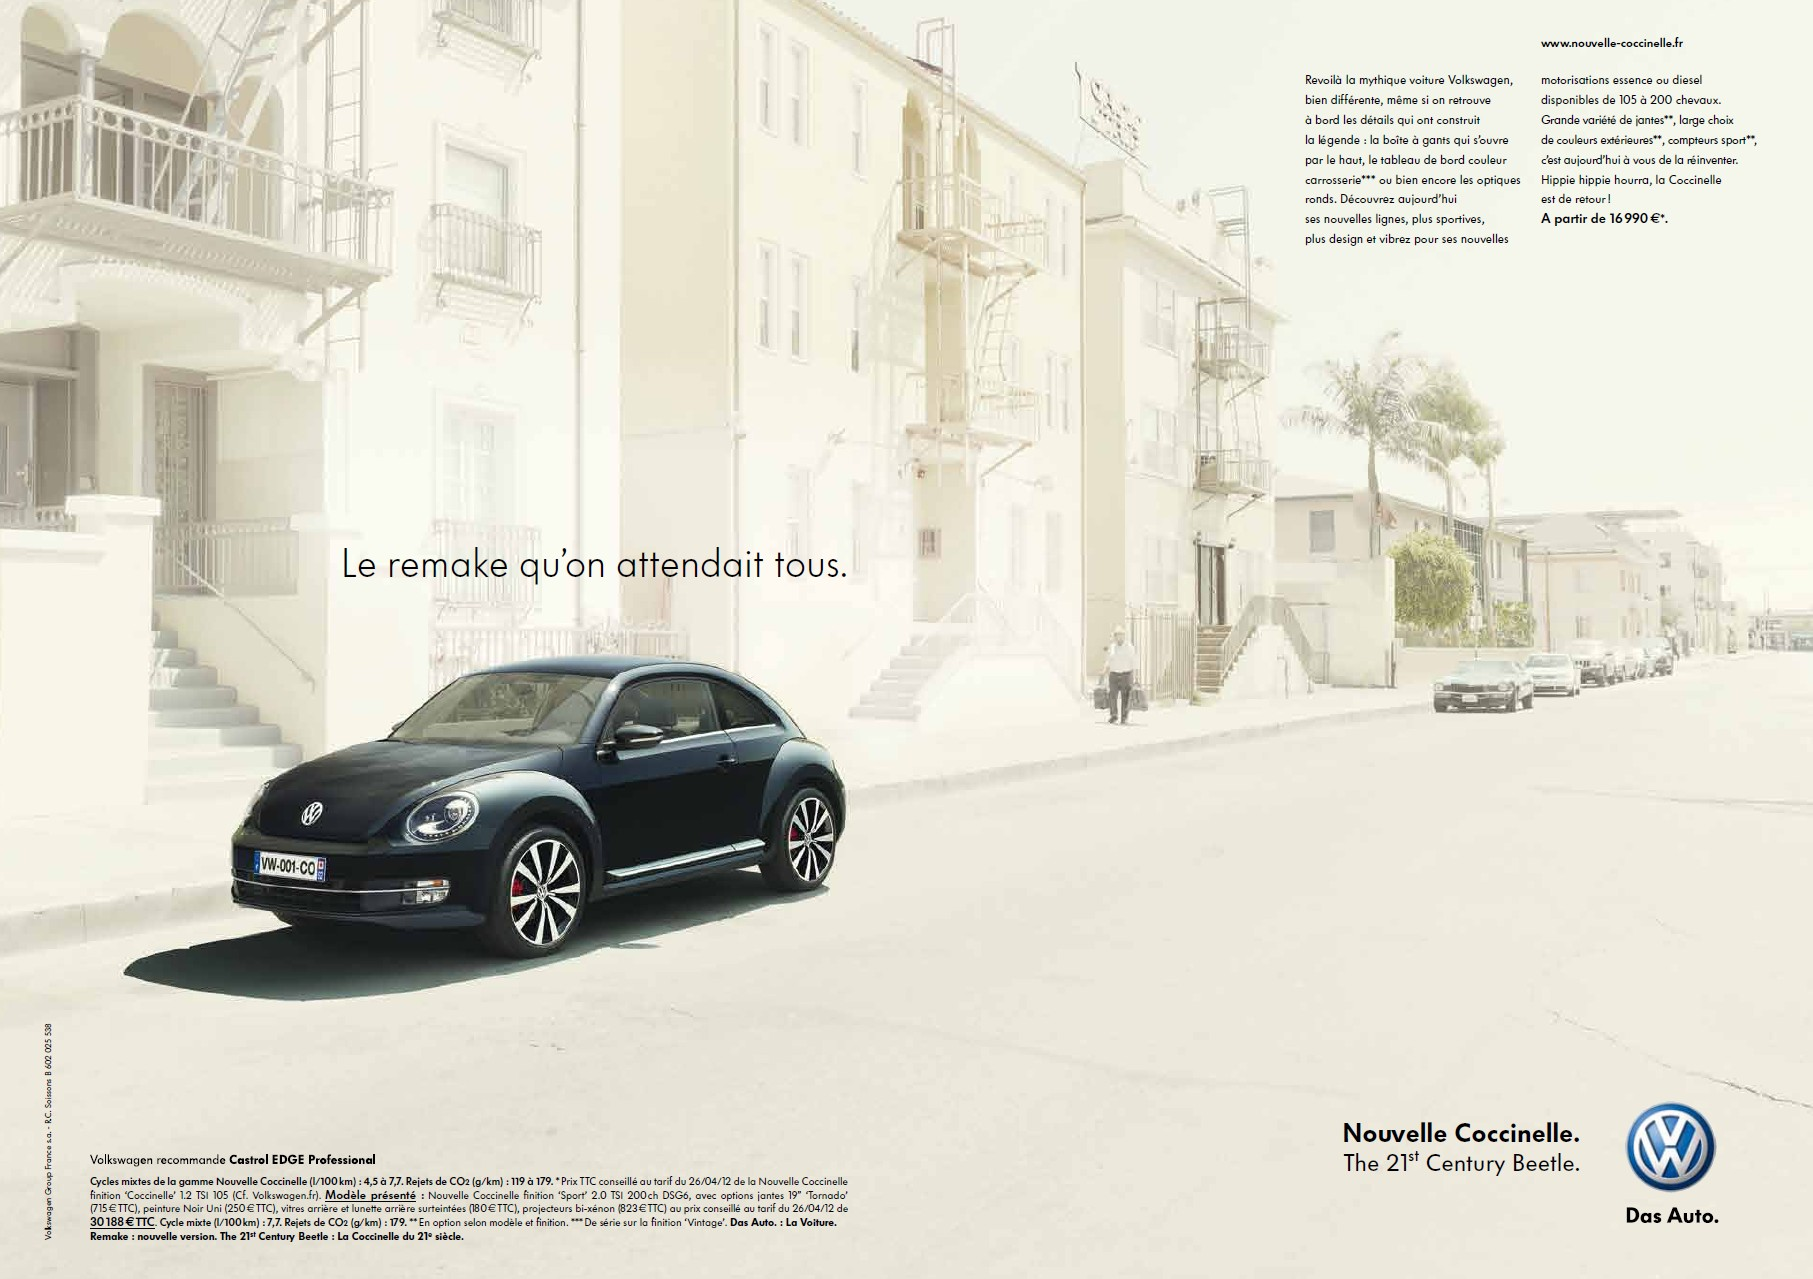 essai nouvelle vw coccinelle the 21st century beetle automotive marketing. Black Bedroom Furniture Sets. Home Design Ideas